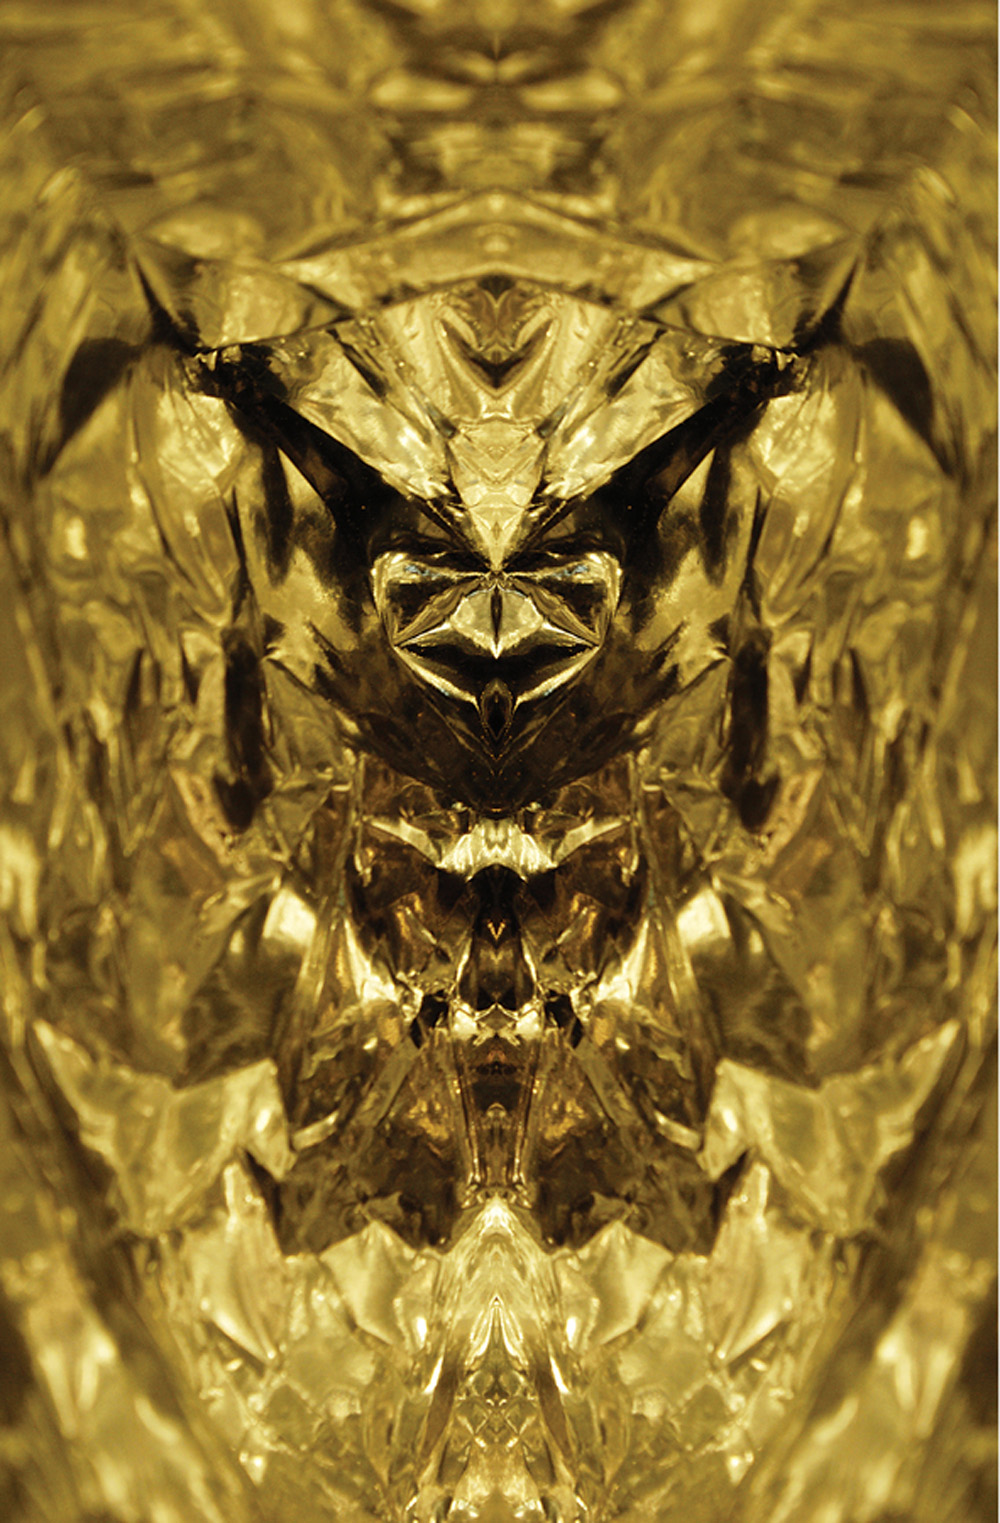 Galen Garwood   Golden Wasp,  2009  Photograph/digital art